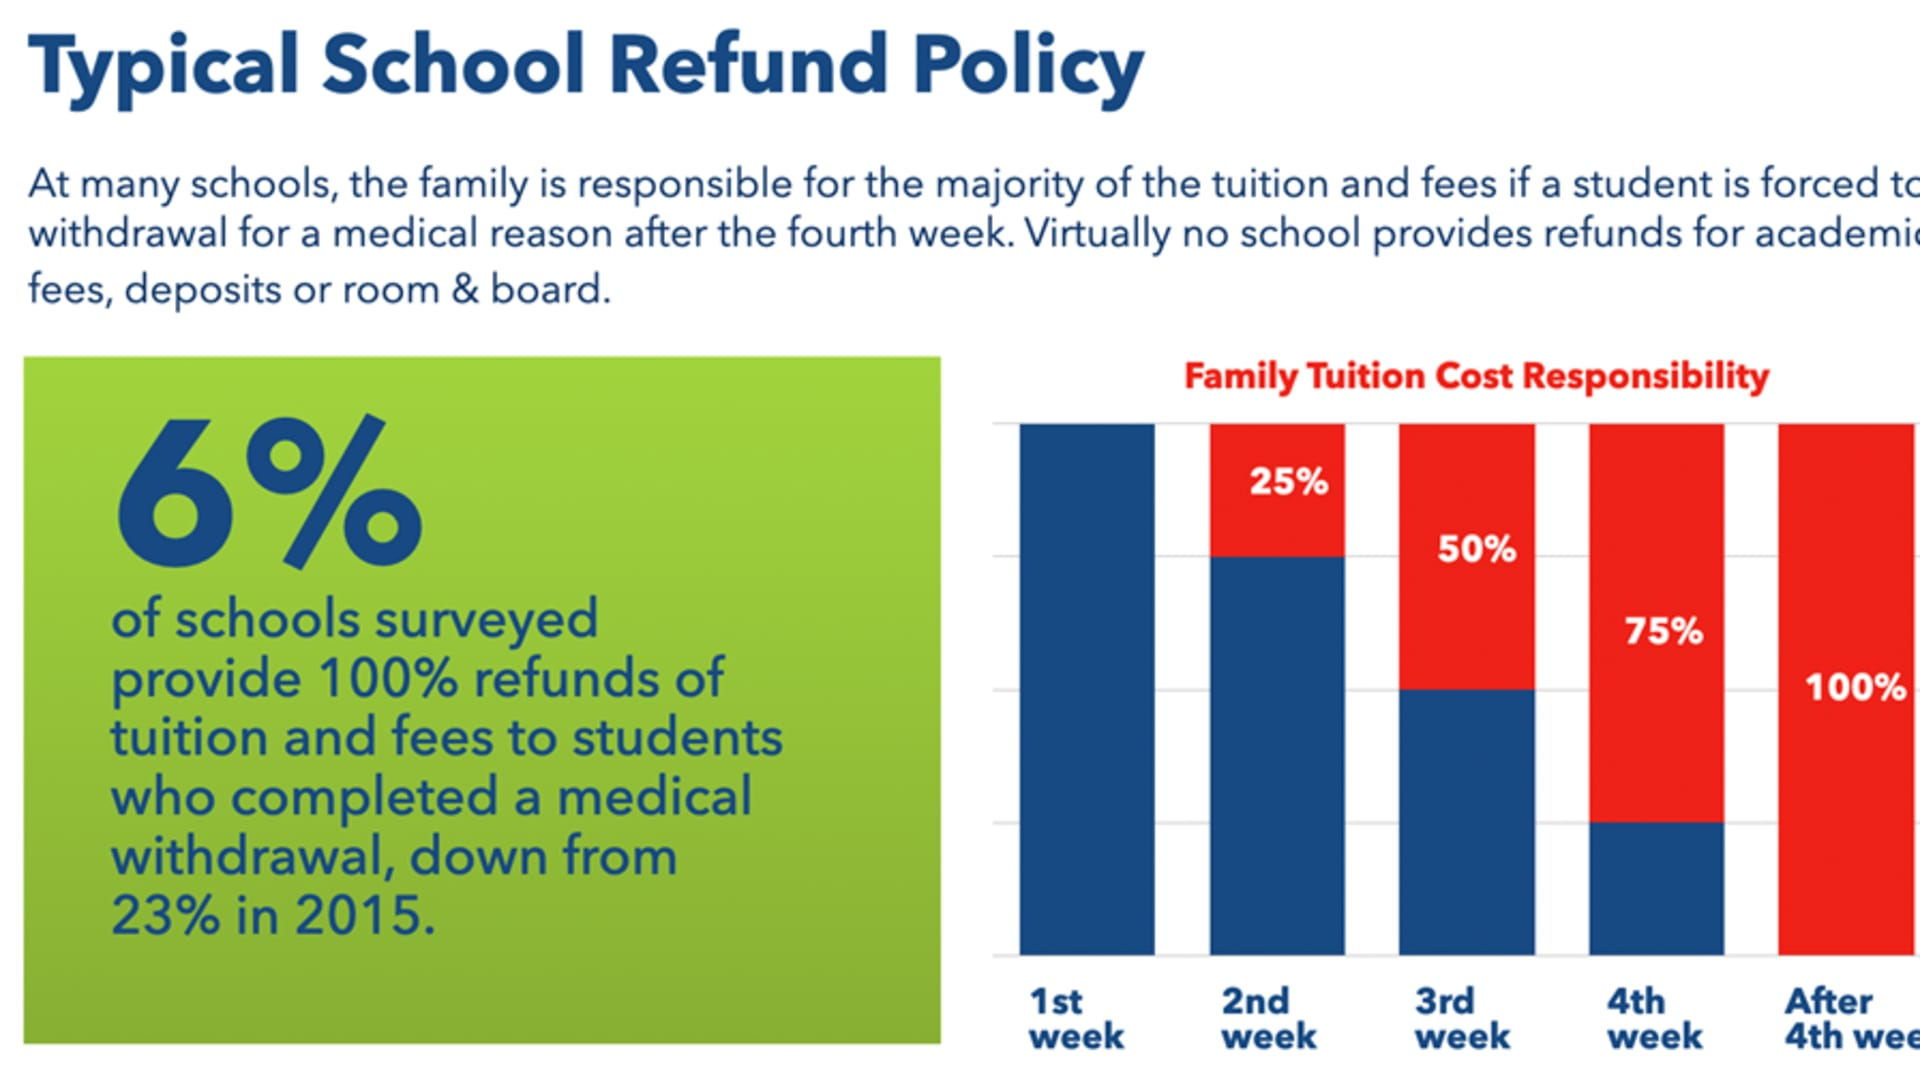 Typical School Refund Policy